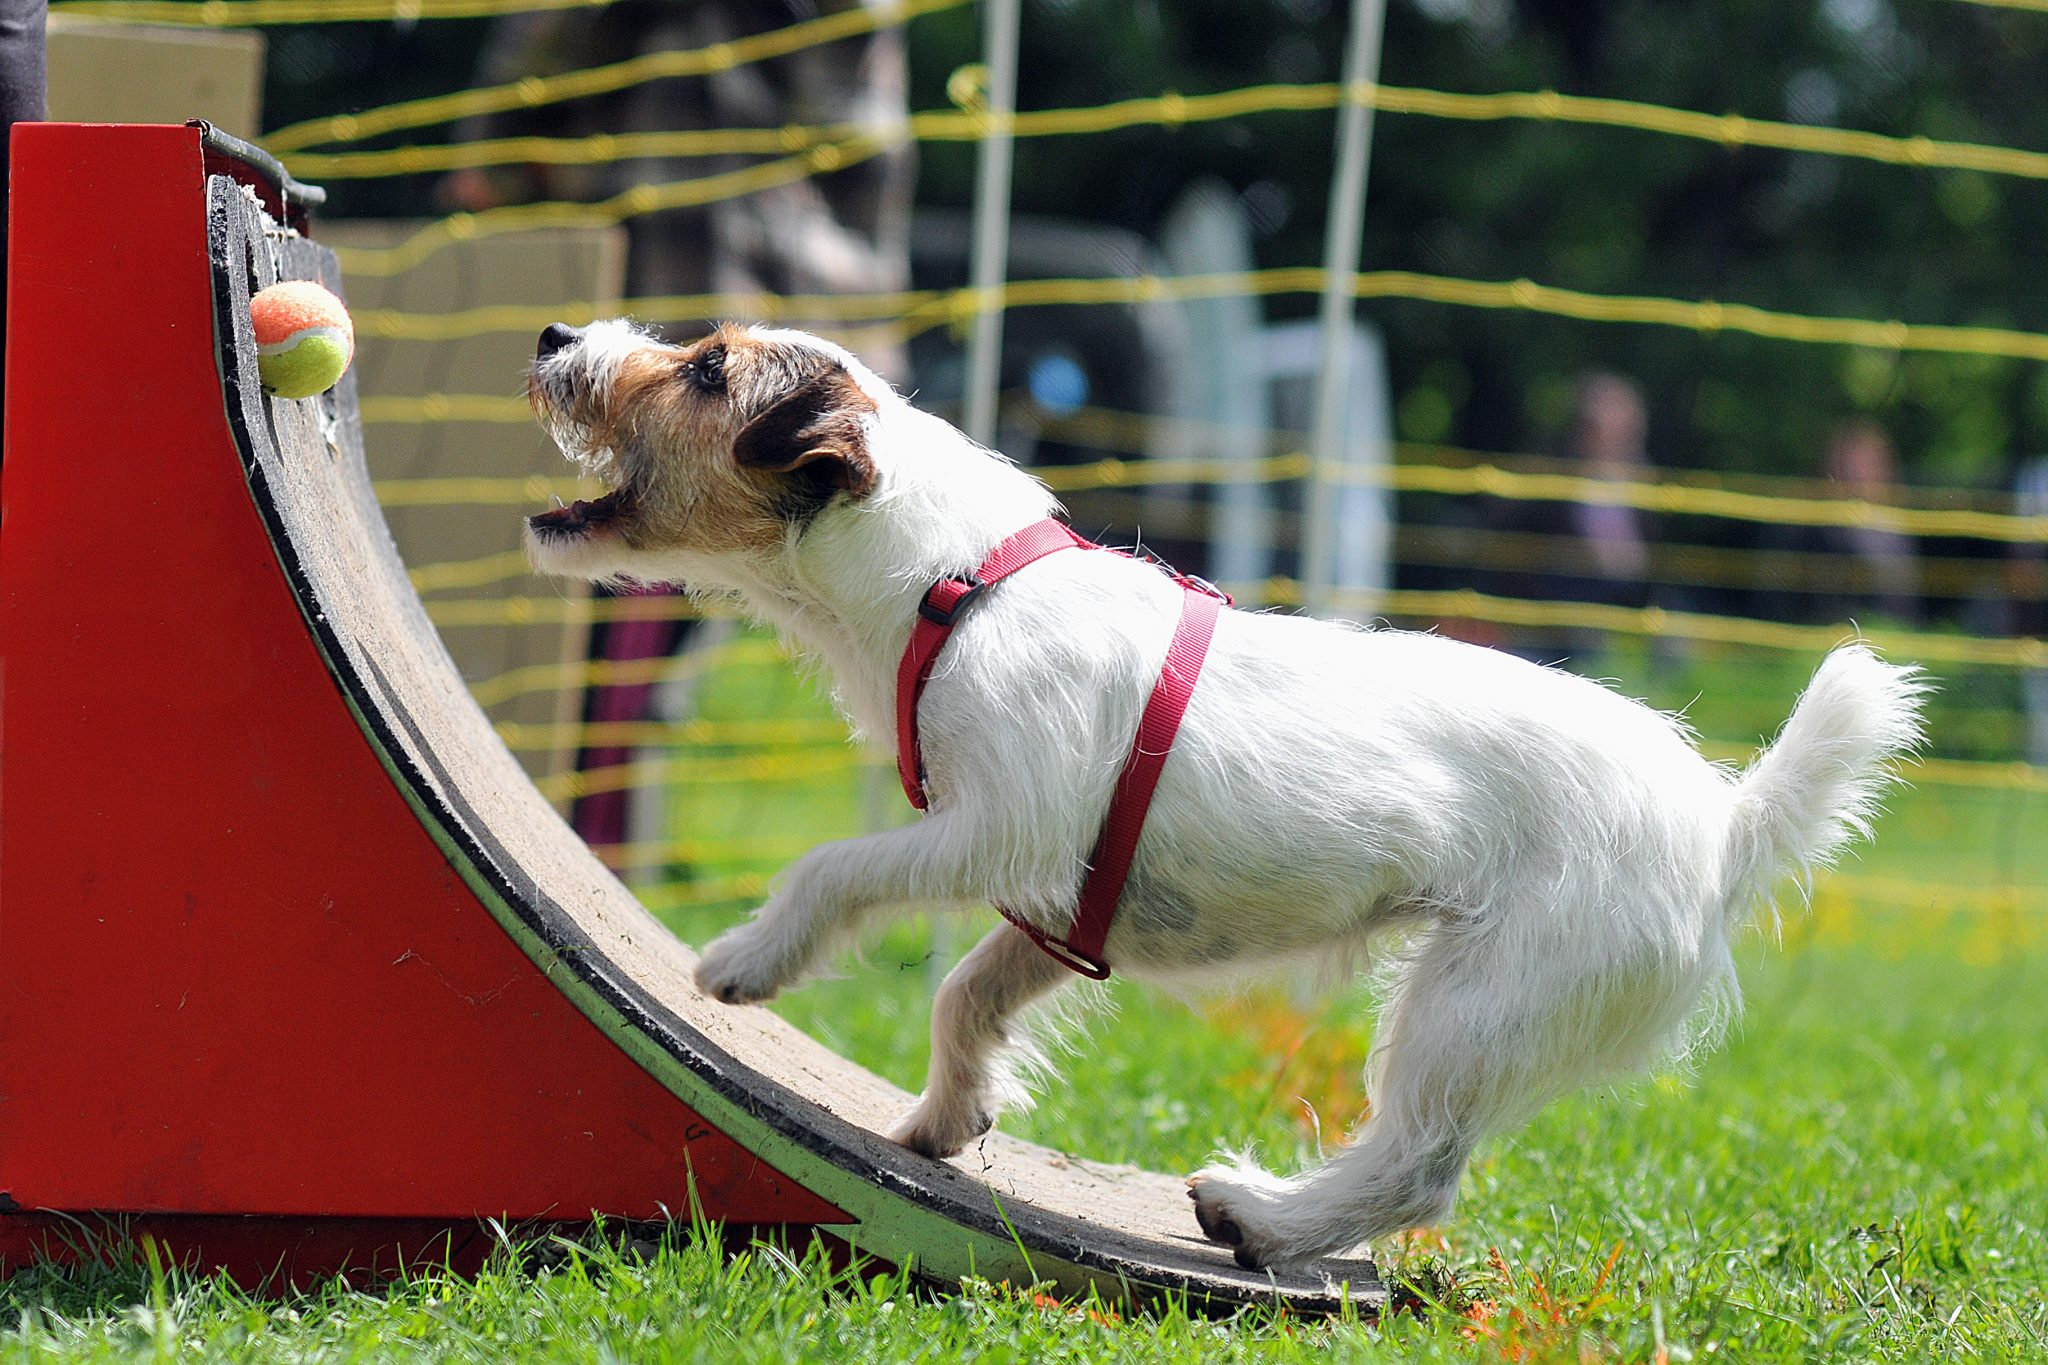 Activities With Your Dog {Activities} #Flyball #Obedience #Activities #Crufts #Exercise #DogTraining #DogActivity www.scruffylittleterrier.com